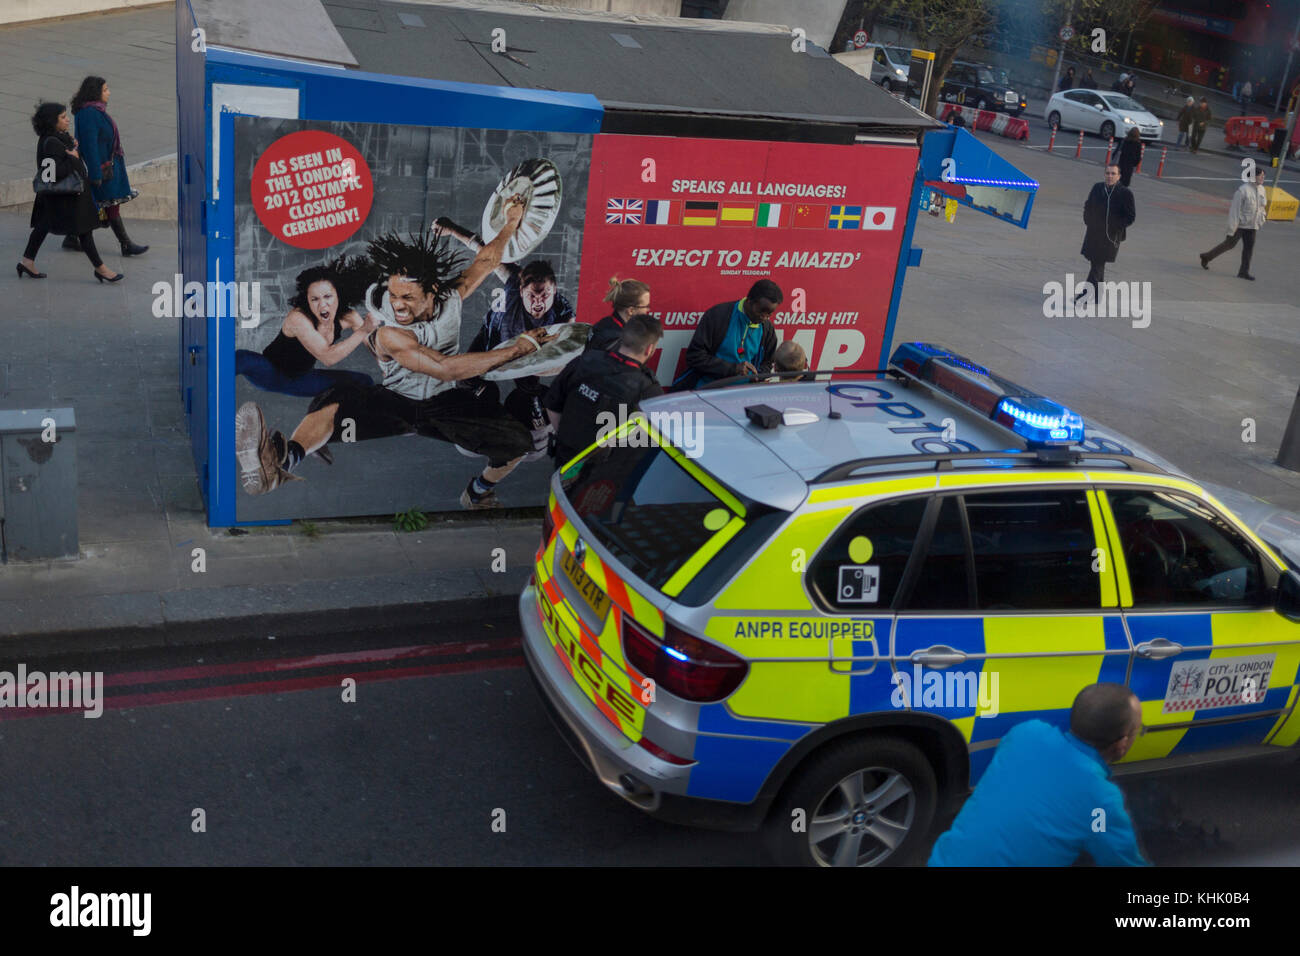 Met police officers question a man next to the poster for Stomp, the West End musical production, on 13th November - Stock Image